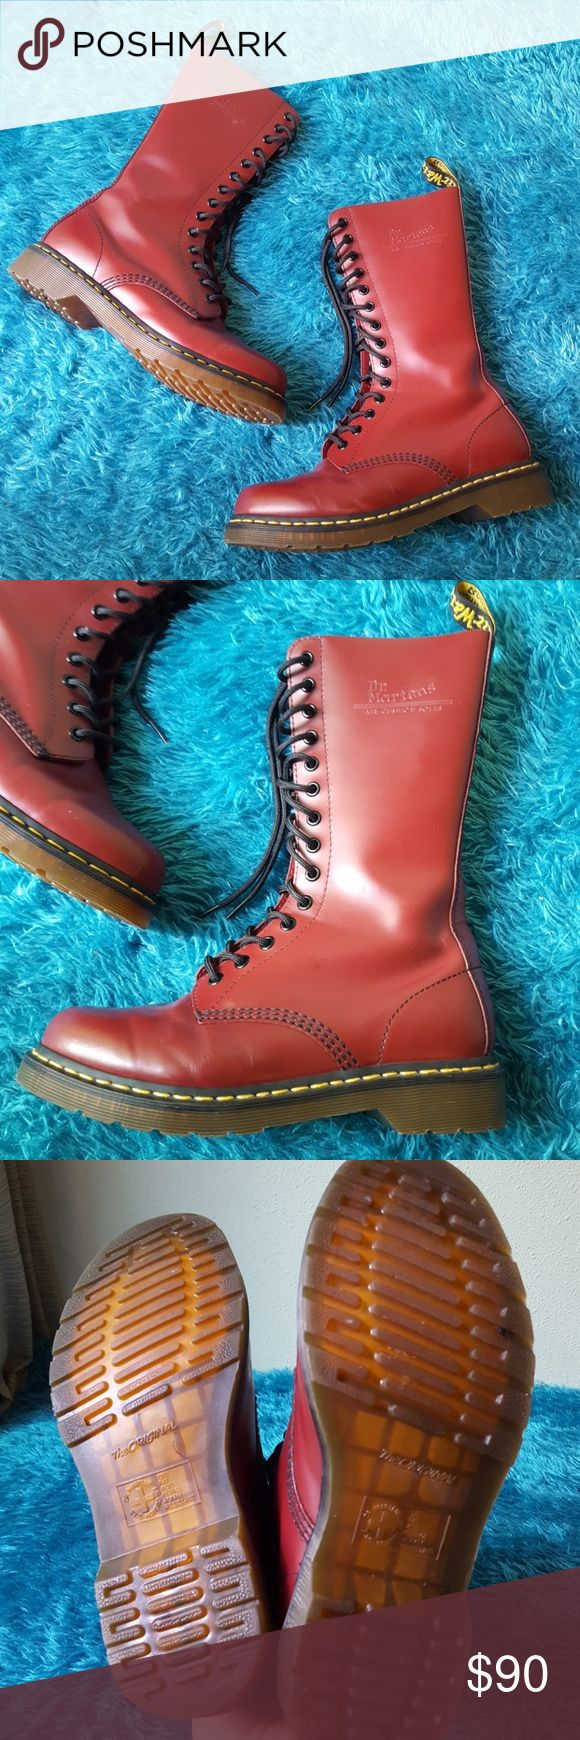 ❤SALE❤Dr. Marten 14 Eye Oxblood Red Boots Size 8 Worn only a few times. Like new condition except for scuff marks on the toe ( see last pics). Leather os still stiff and hasn't been worn in at all! 🥀 14 Eye Oxblood Red. Dr. Martens Shoes Lace Up Boots